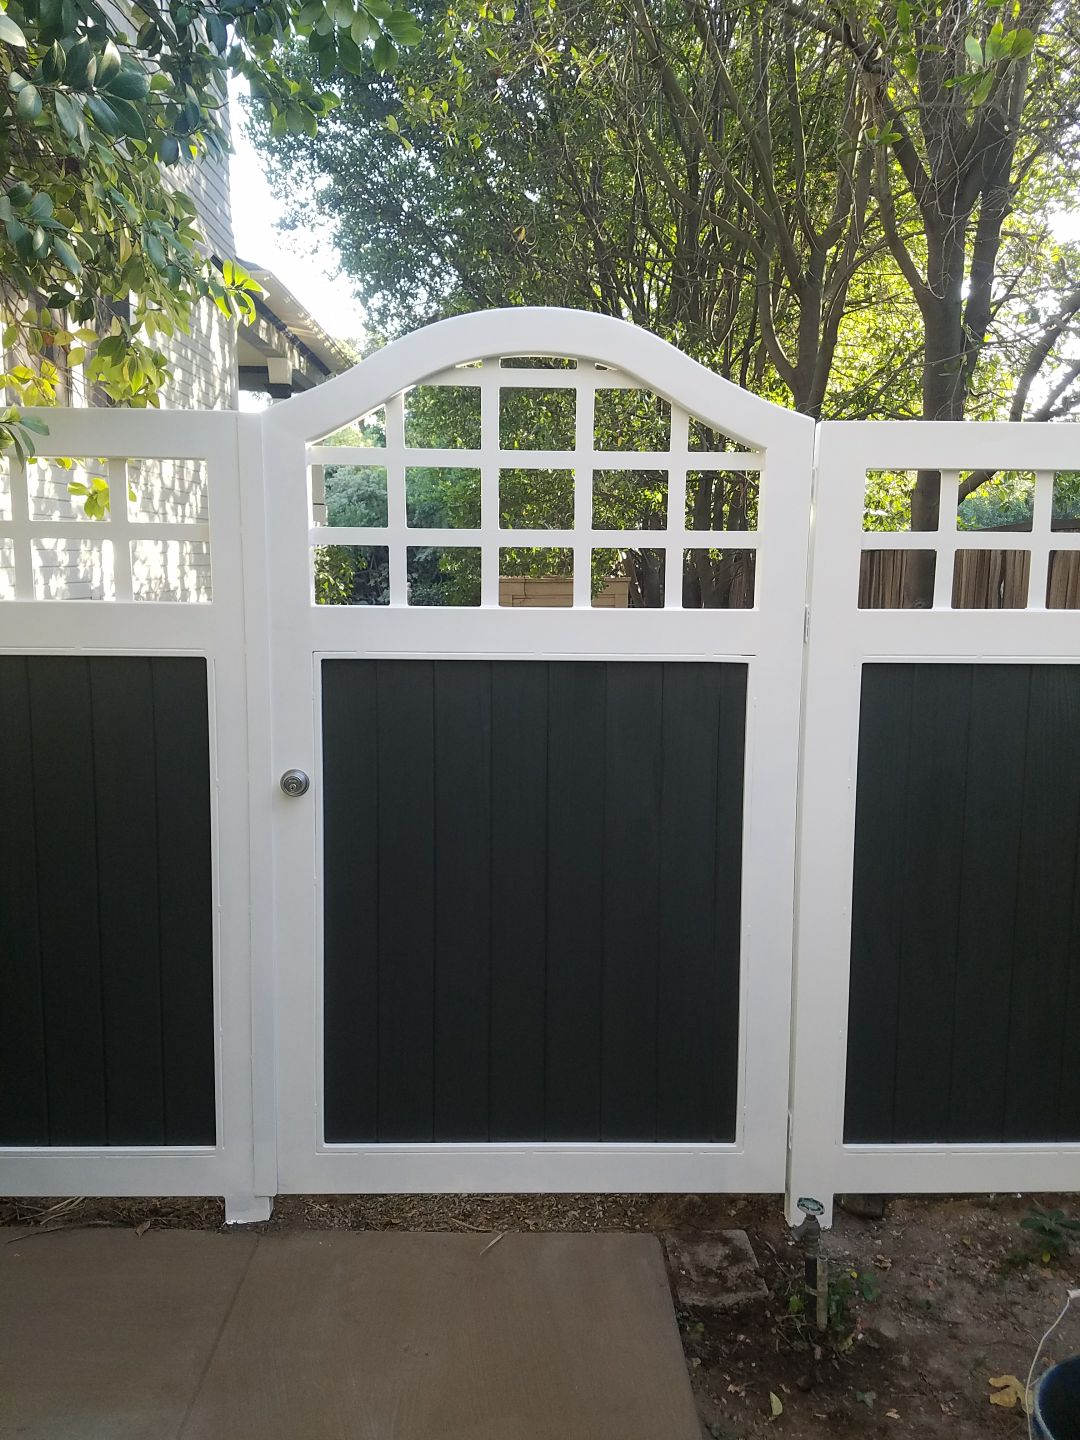 2 Tone Black And White Colonial Style Swing Gate And